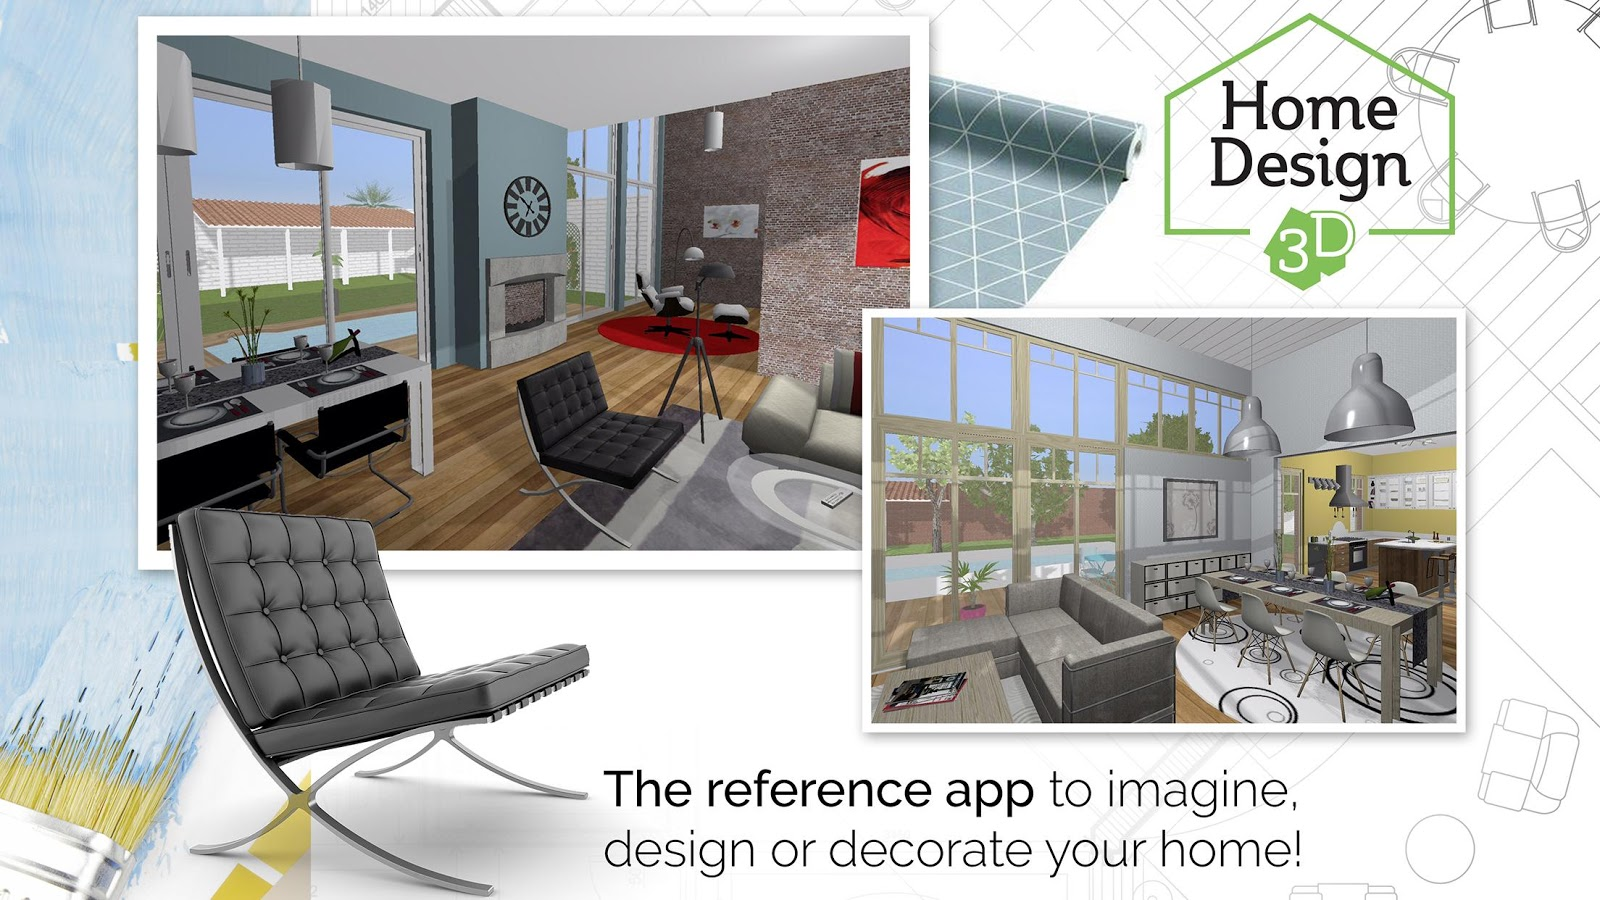 Home design 3d freemium android google play for House interior design event dublin